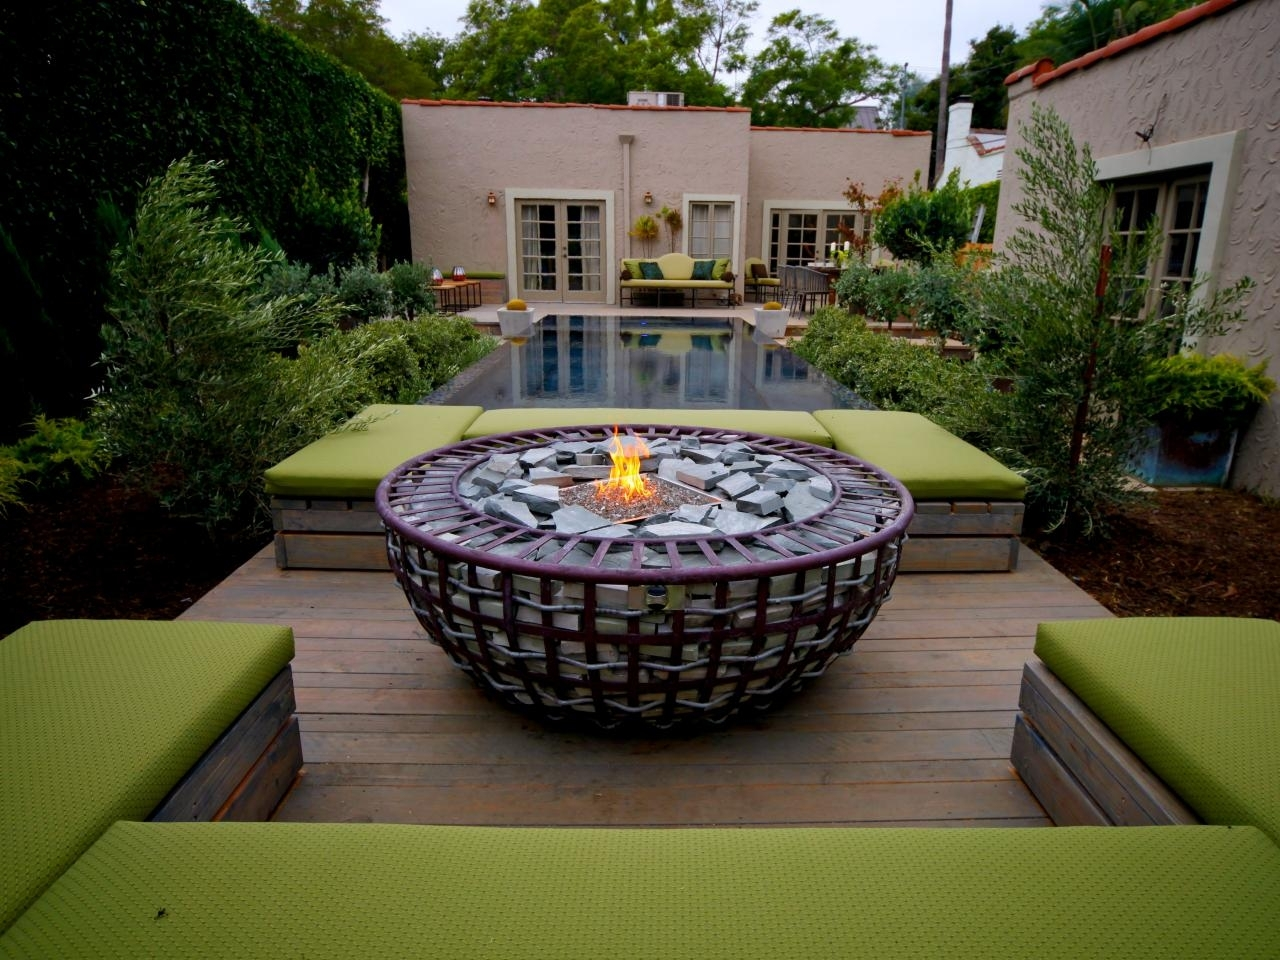 66 Fire Pit And Outdoor Fireplace Ideas Diy Network Blog Made Pertaining To Unique Outdoor Fireplaces Grill Diy Unique Outdoor Fireplaces Grill